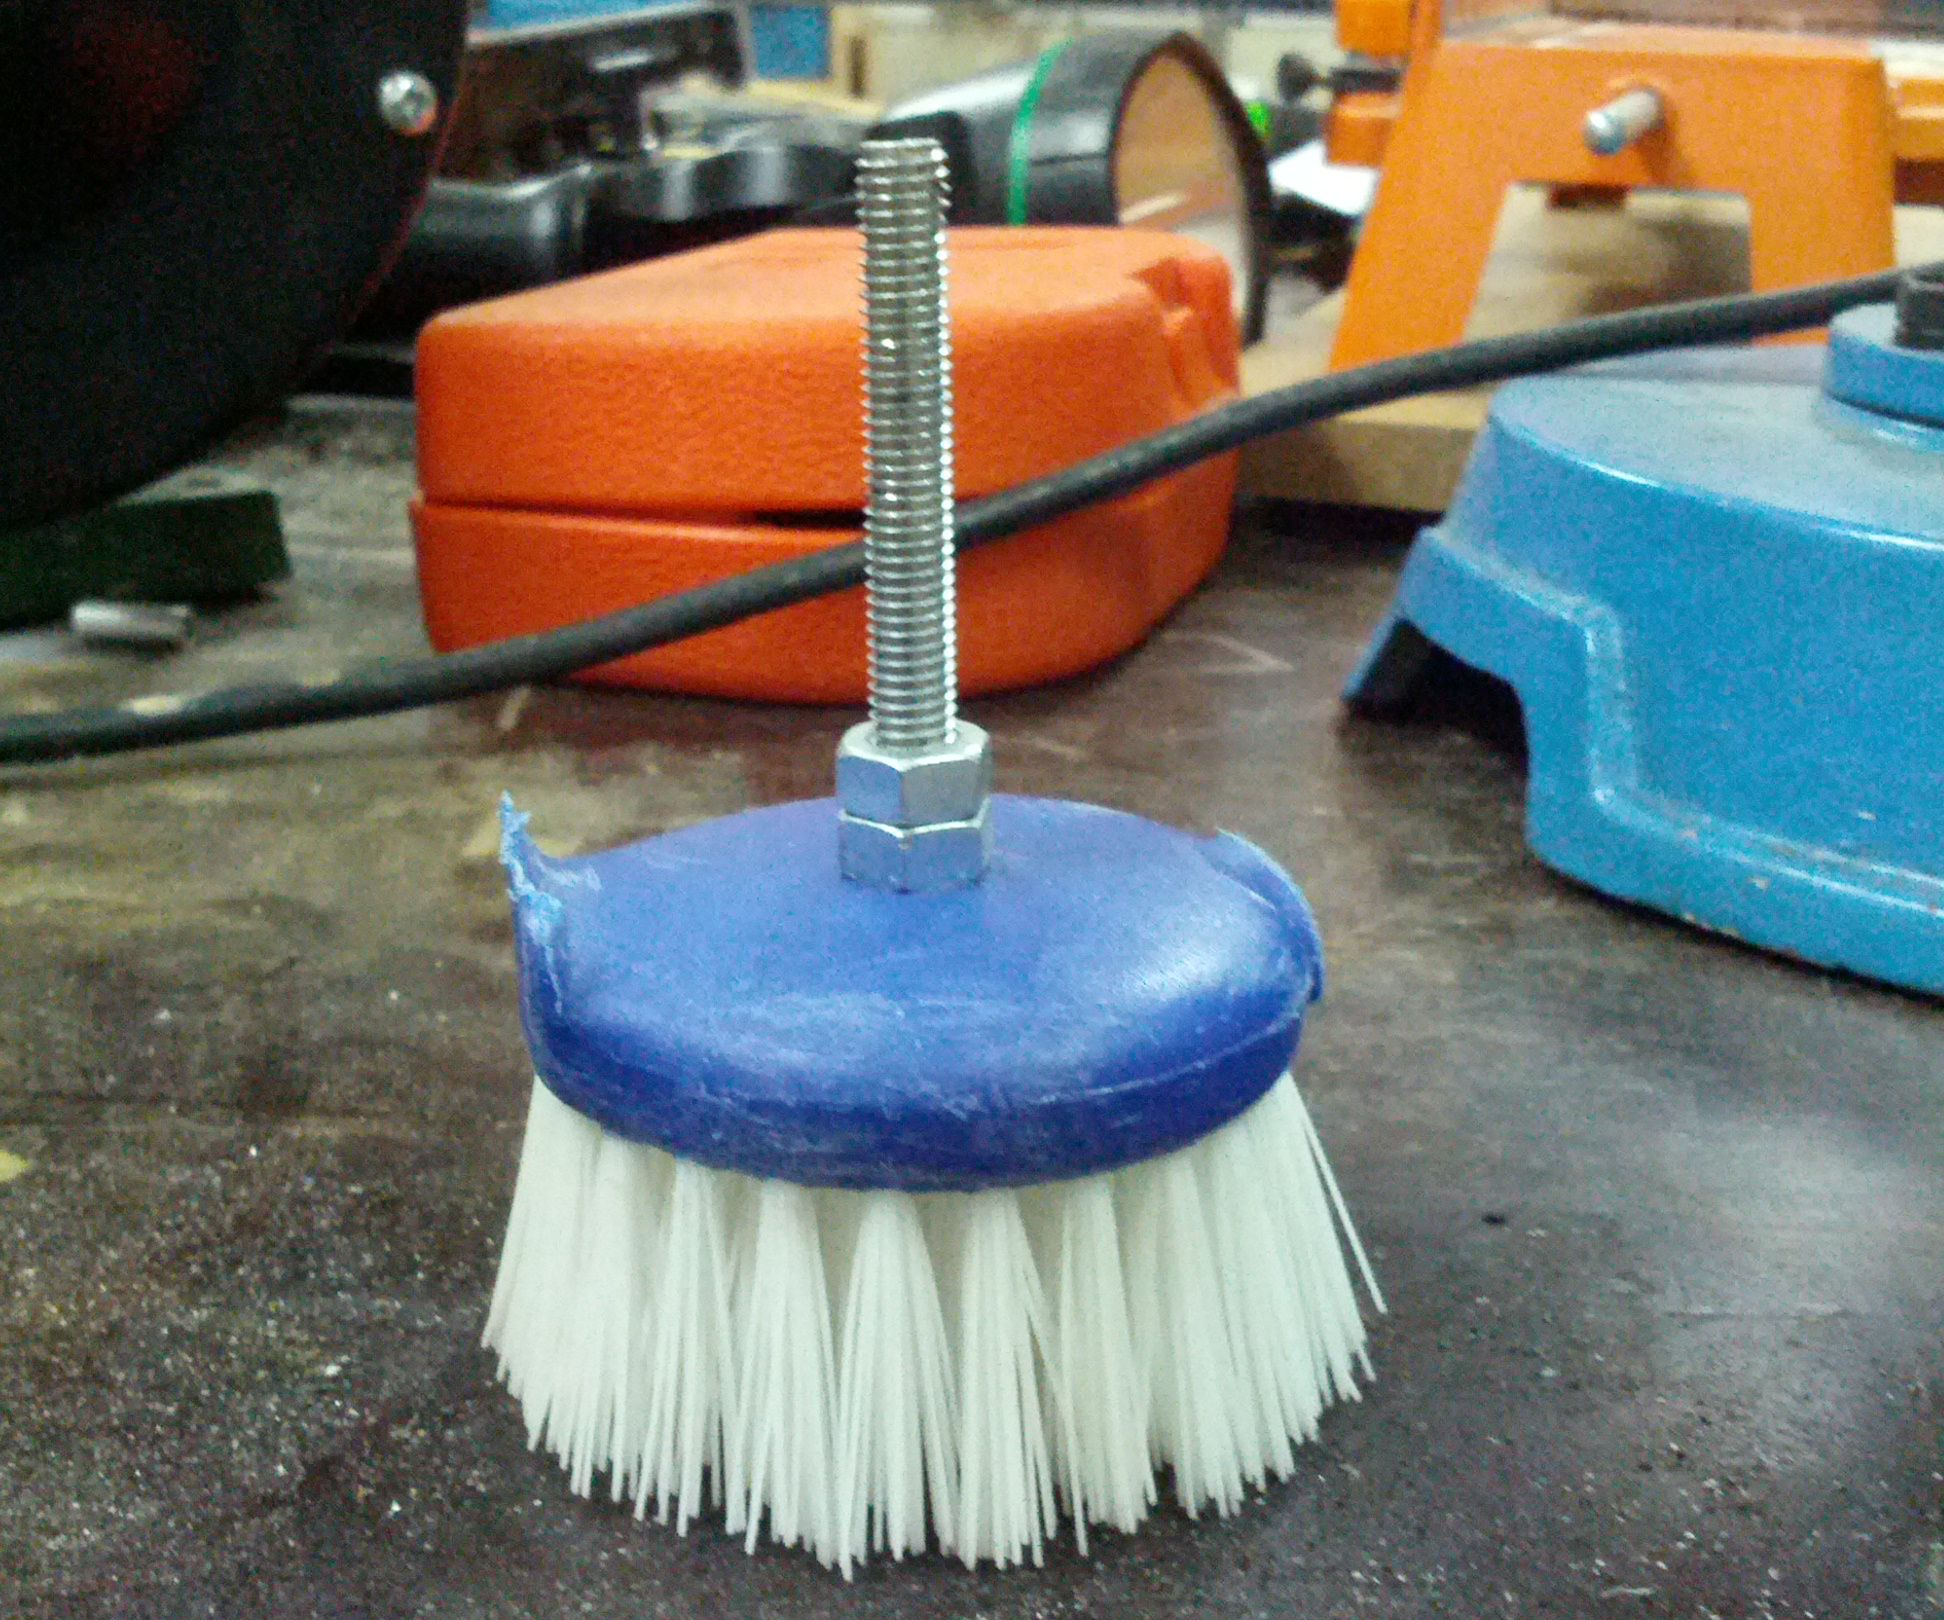 How to make a powerdrill scrubber head